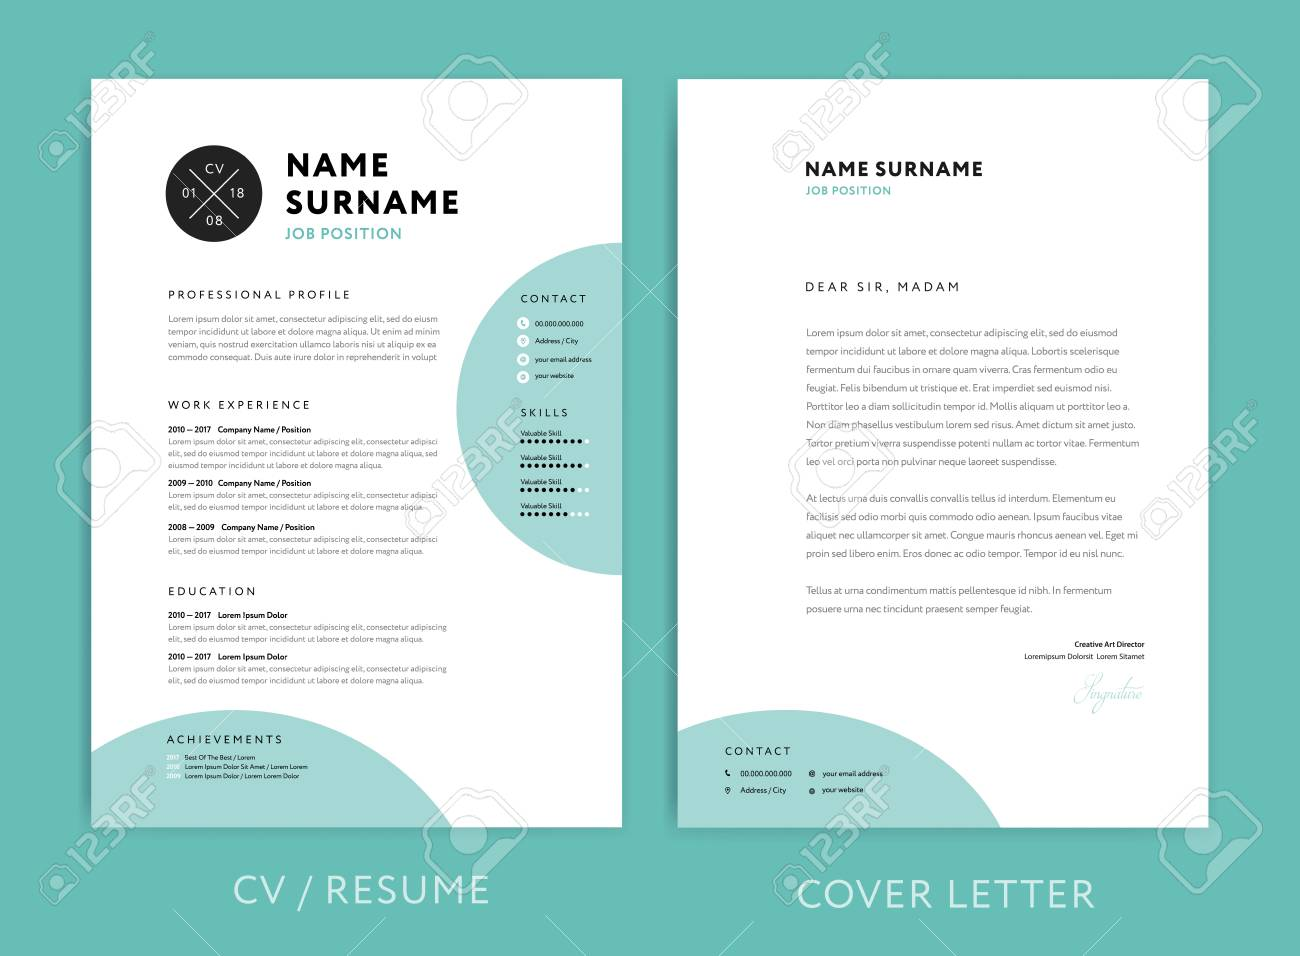 cv background Creative CV / Resume Template Teal Green Background Color